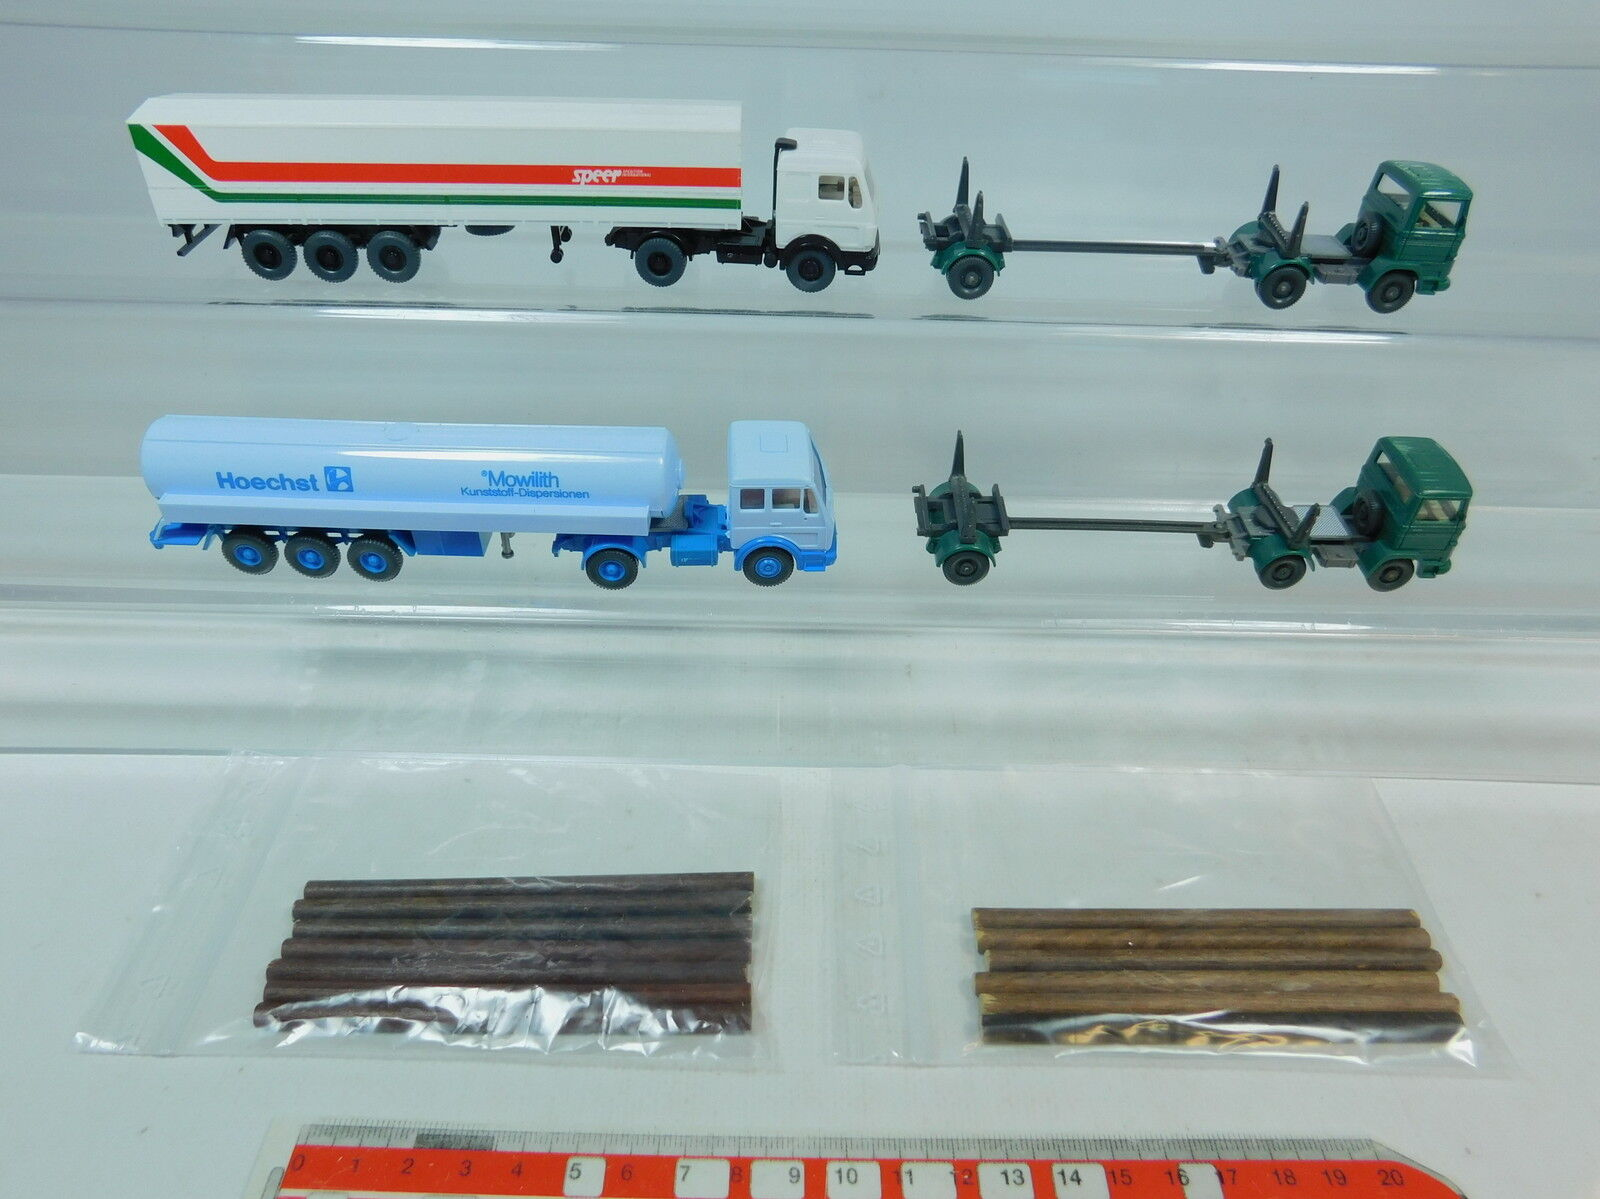 Au974-0, 5  4x wiking h0 Camion Mercedes-Benz MB  Hoechst mowilith  lance etc, s.g.